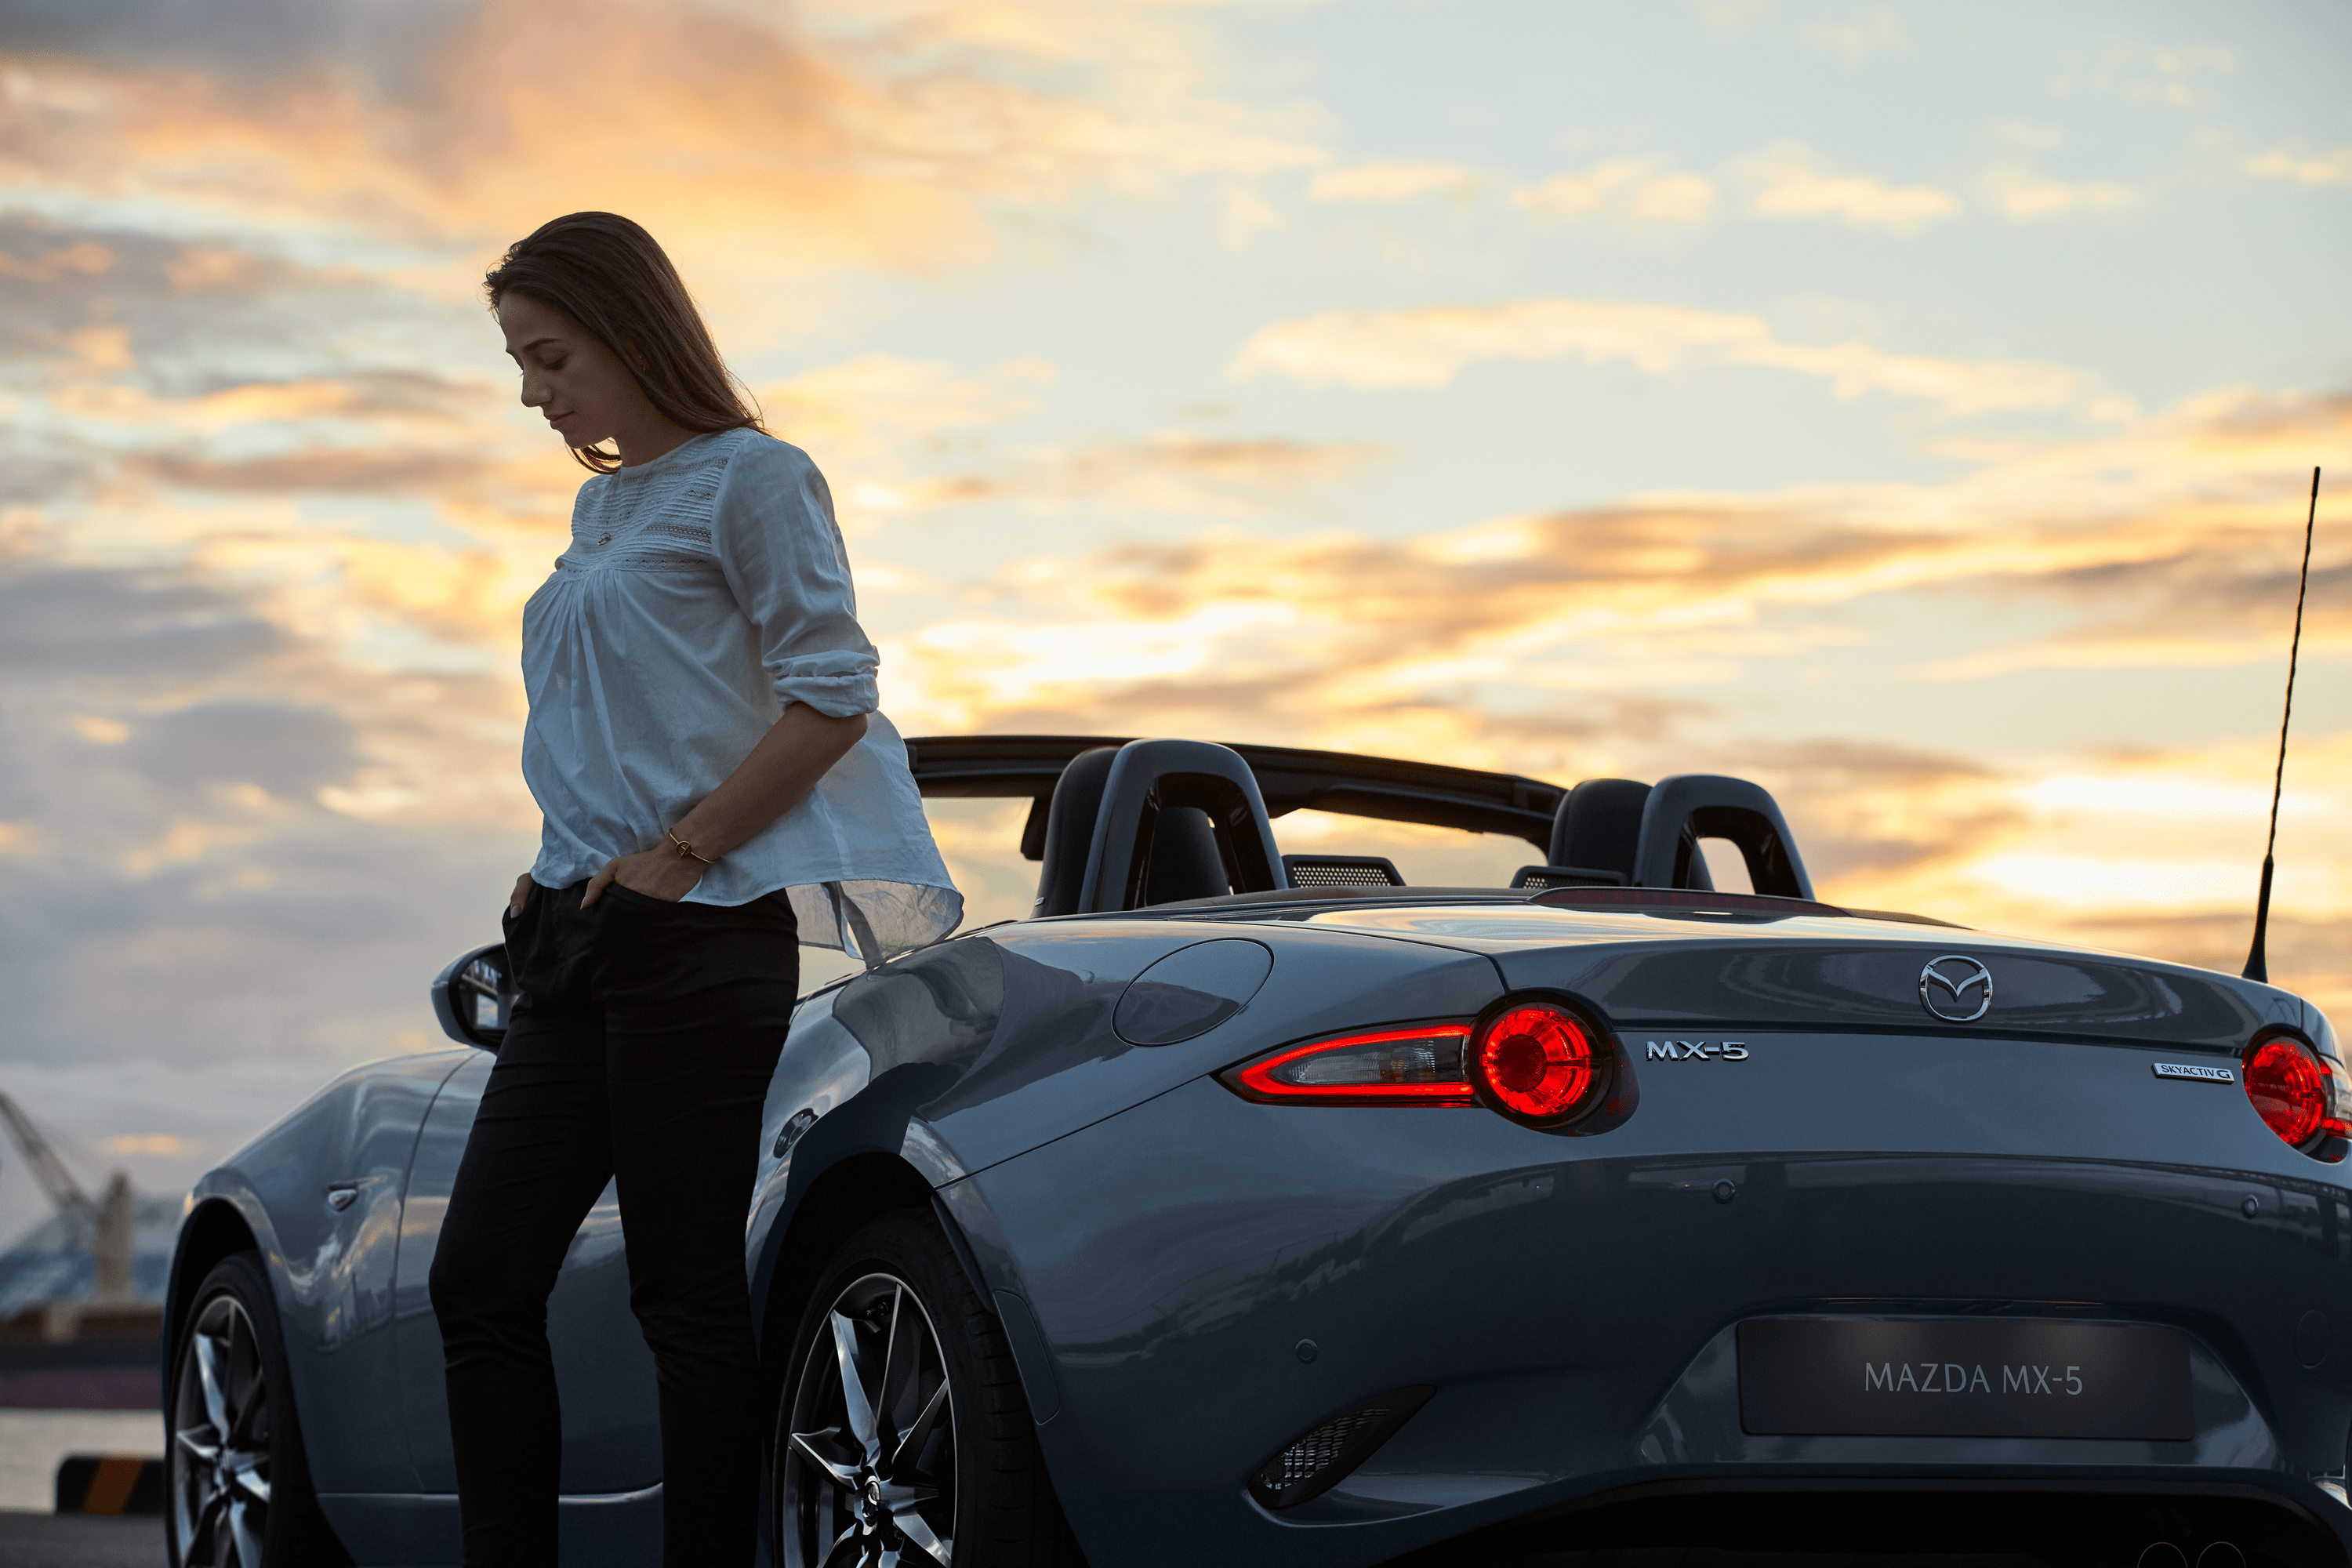 2019 MX 5 IPM3 Softtop NED LHD C07 Ext RQ Until Sep 19Th 2022 Revised20191113 Png Min